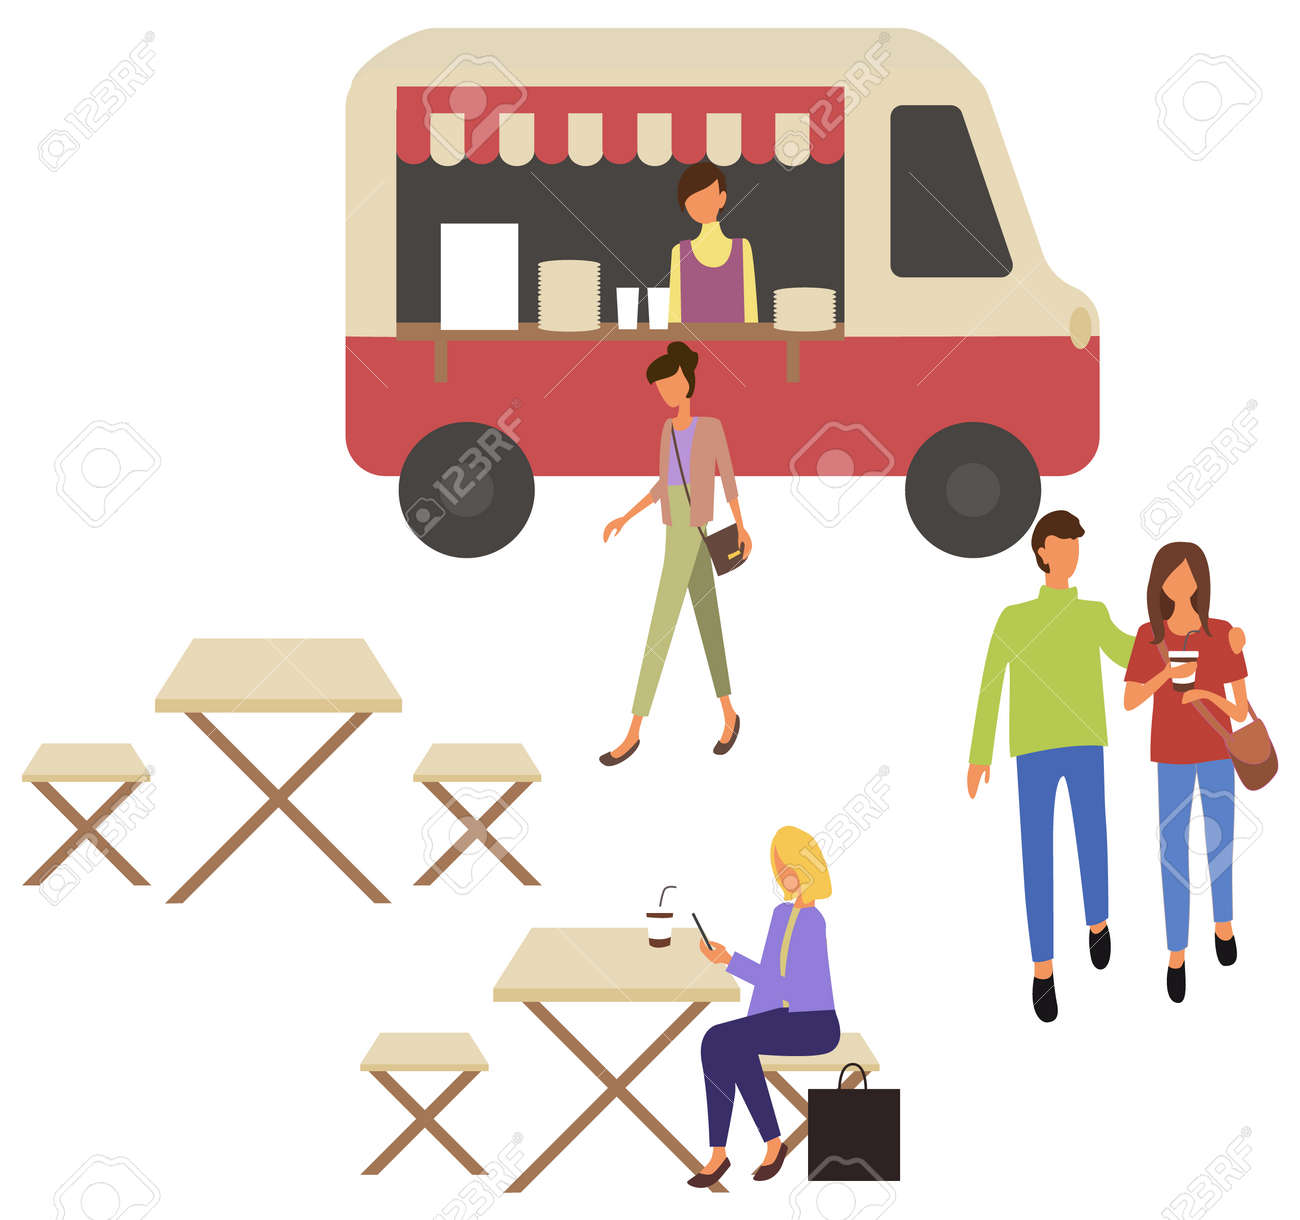 Fast Food Truck Takeout Food Shop And Cafe With Takeaway Dishes Royalty Free Cliparts Vectors And Stock Illustration Image 153681354